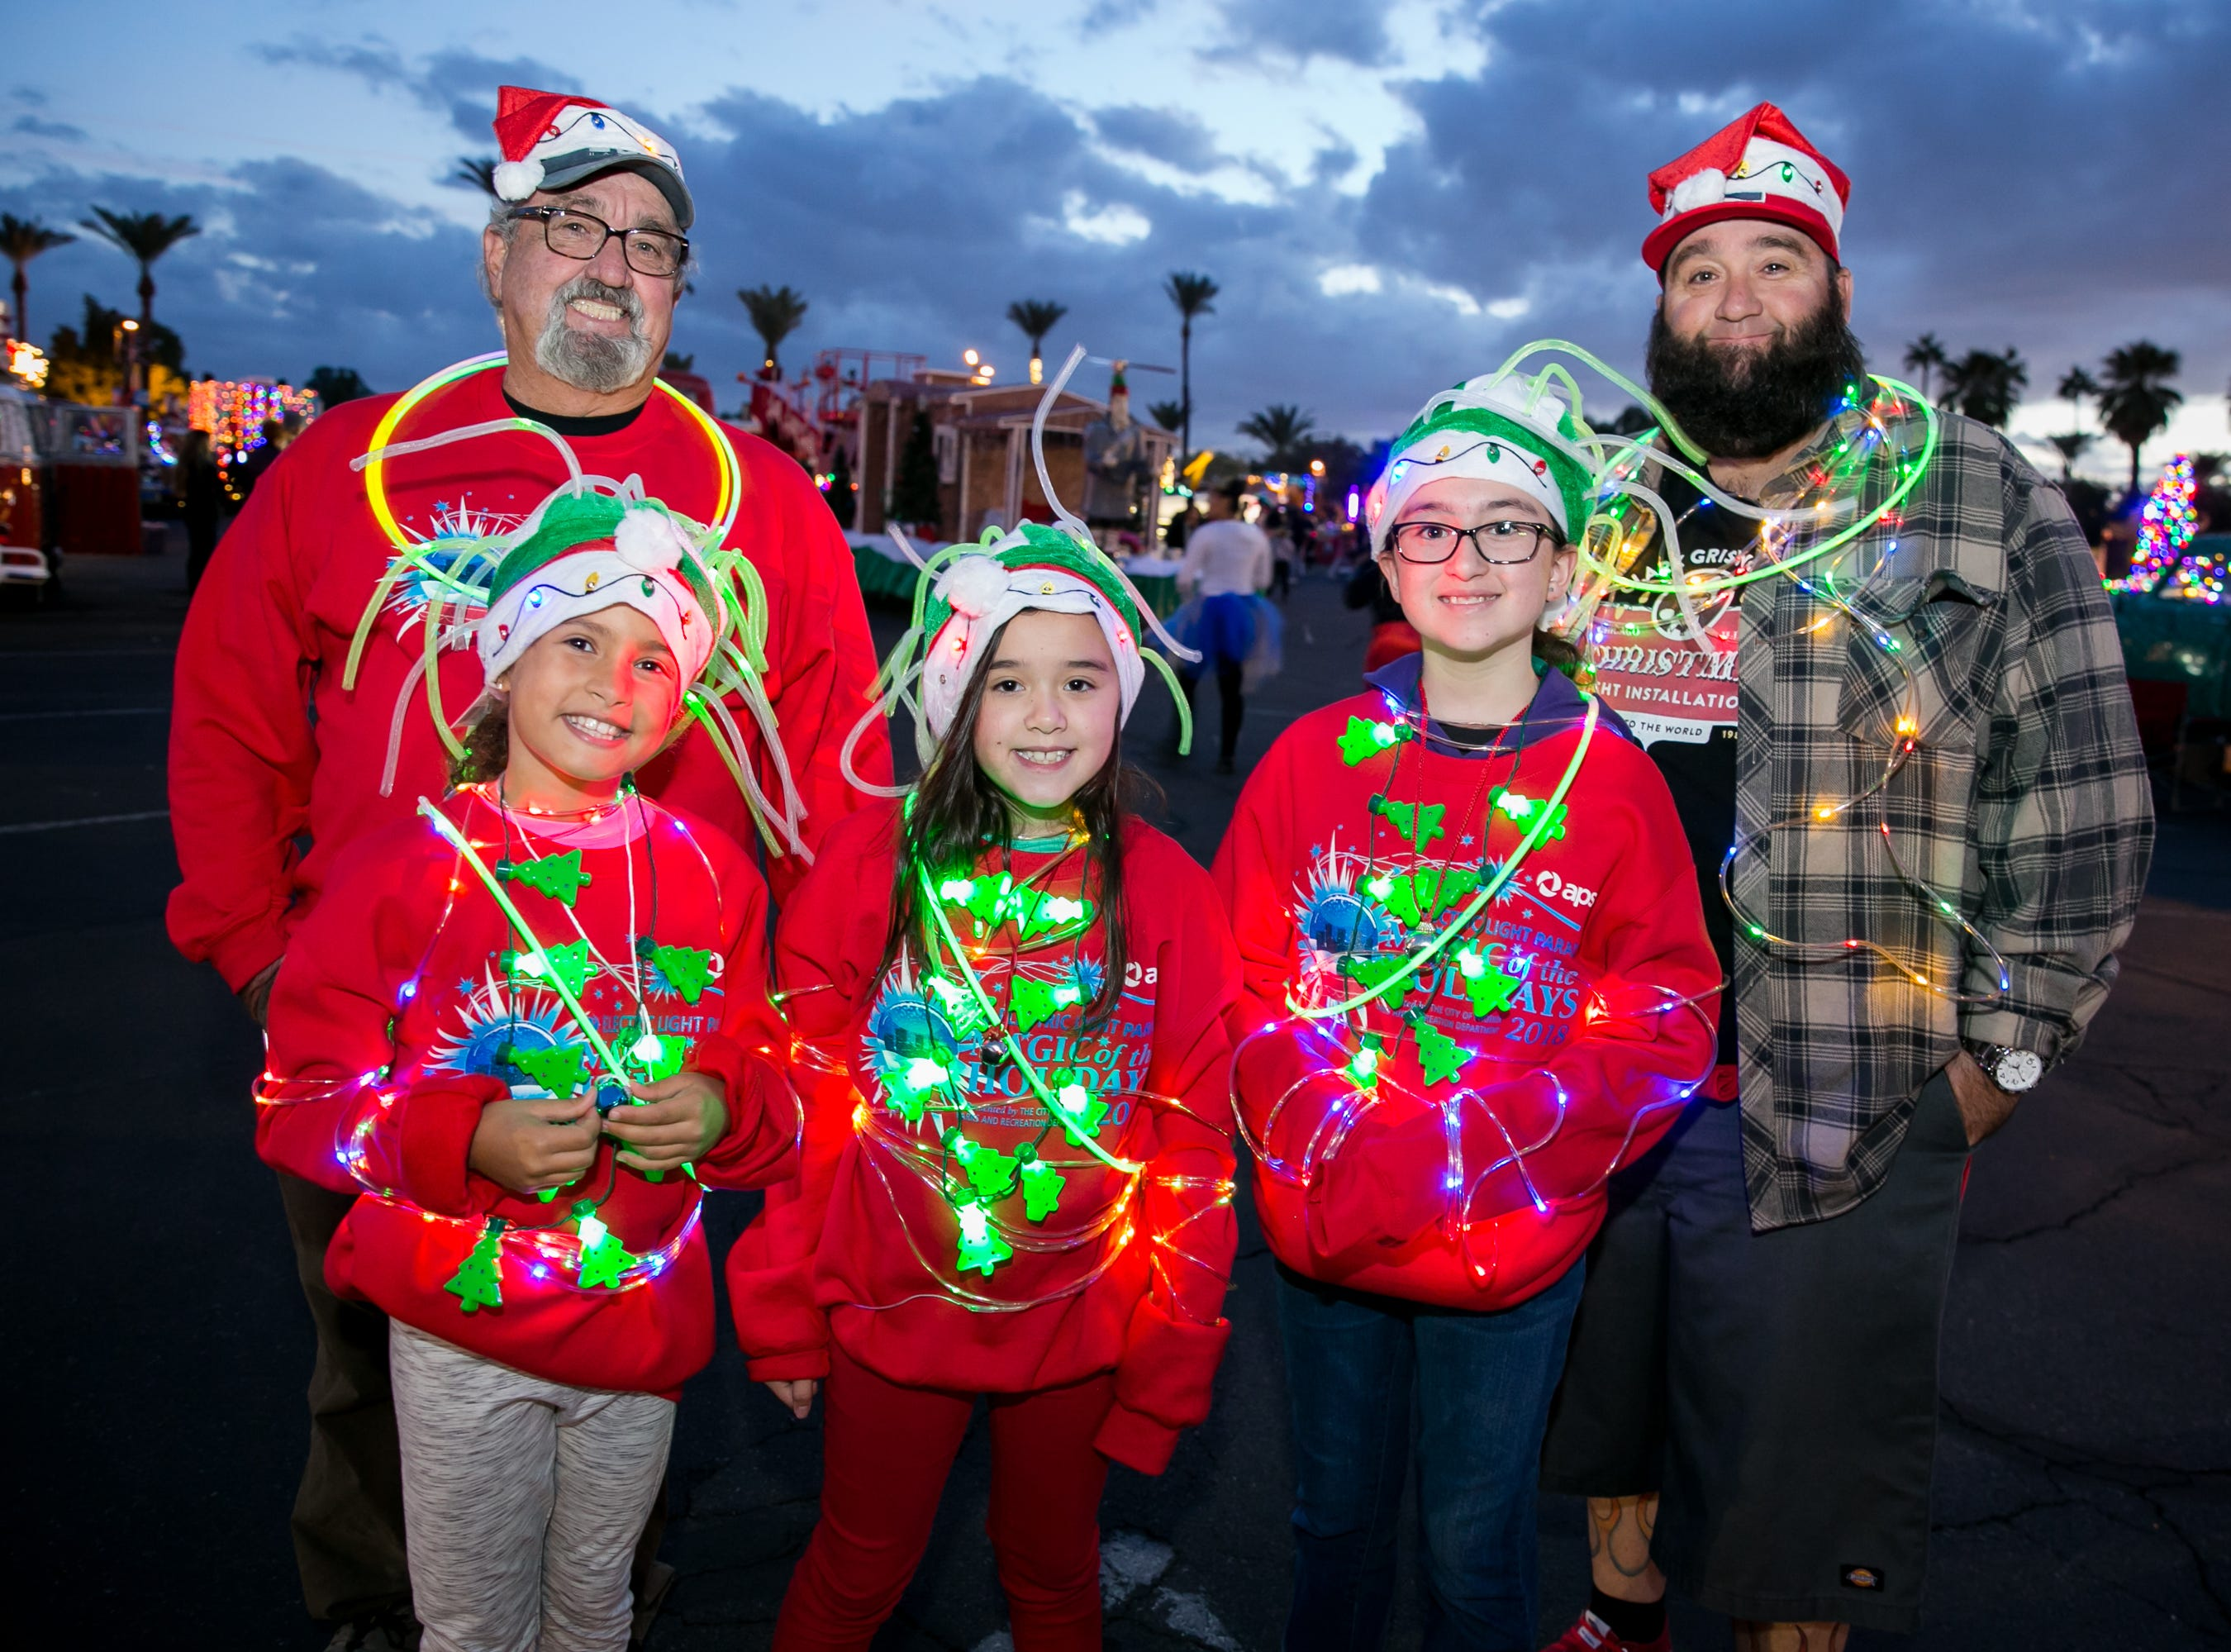 This group went all out during the APS Electric Light Parade in Central Phoenix on Saturday, December 1, 2018.